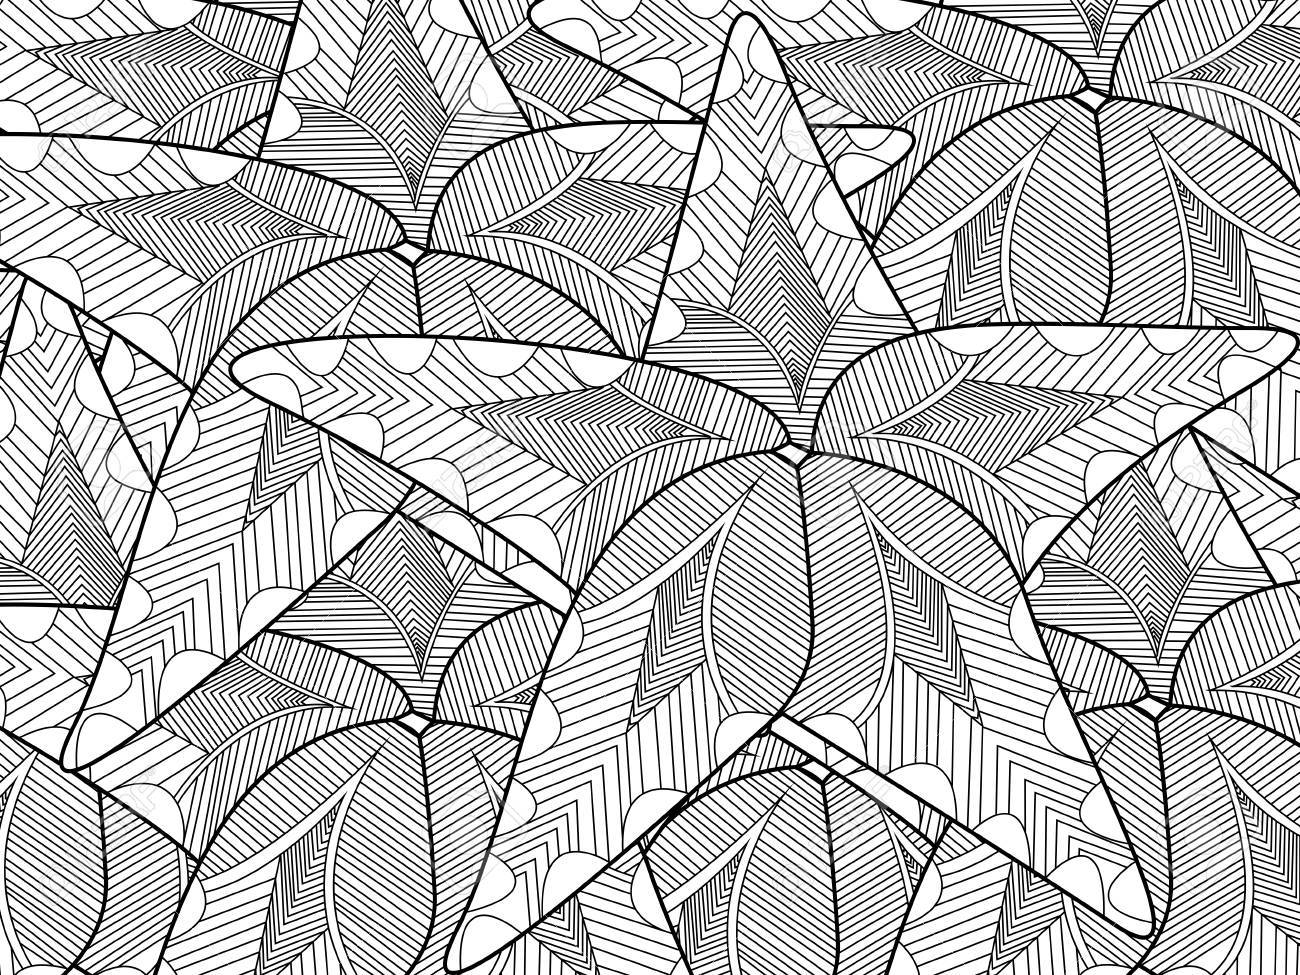 Starfish Coloring Book For Adults Vector Illustration Stock